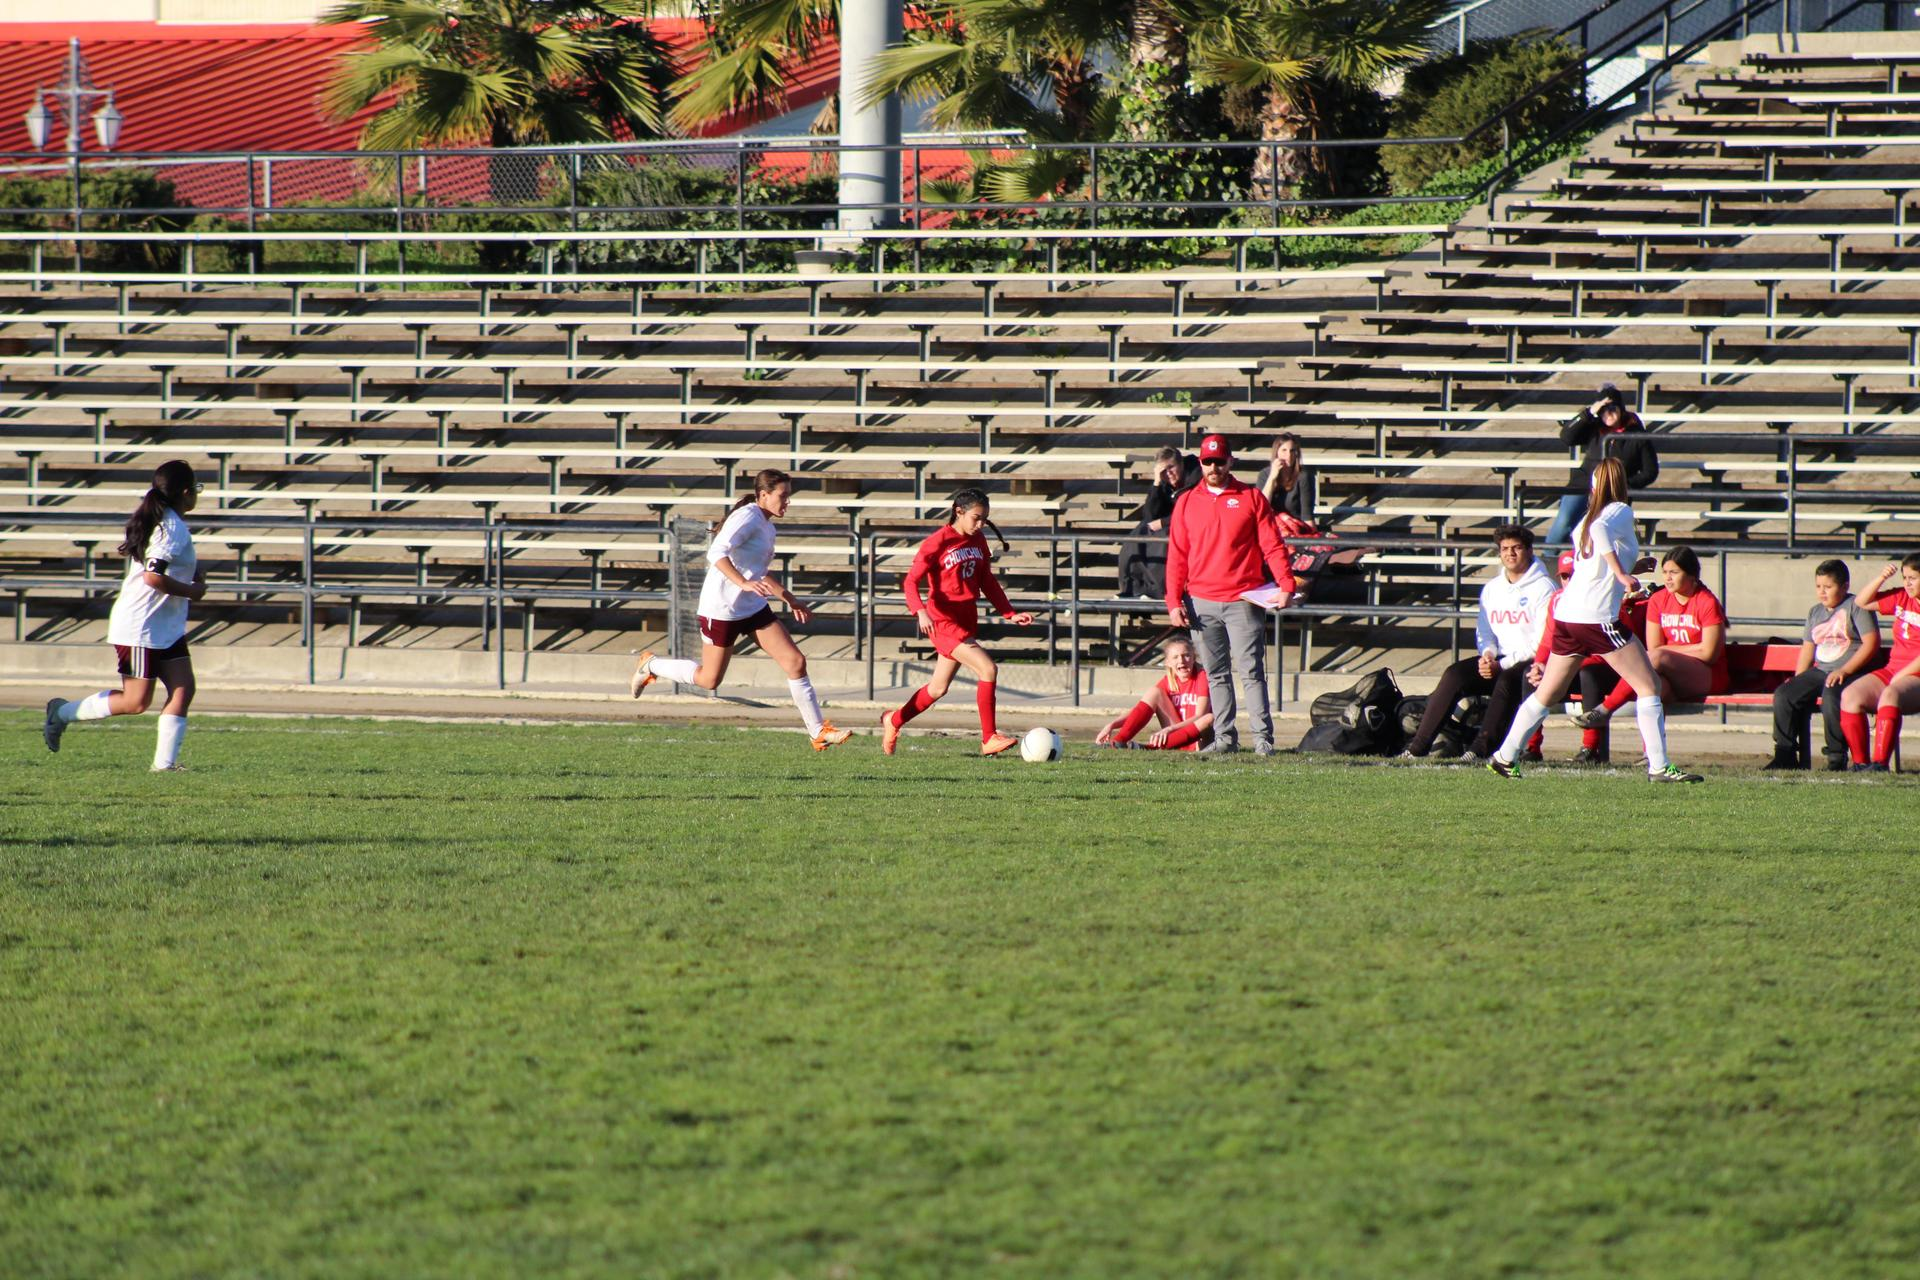 JV Girls playing soccer against Sierra